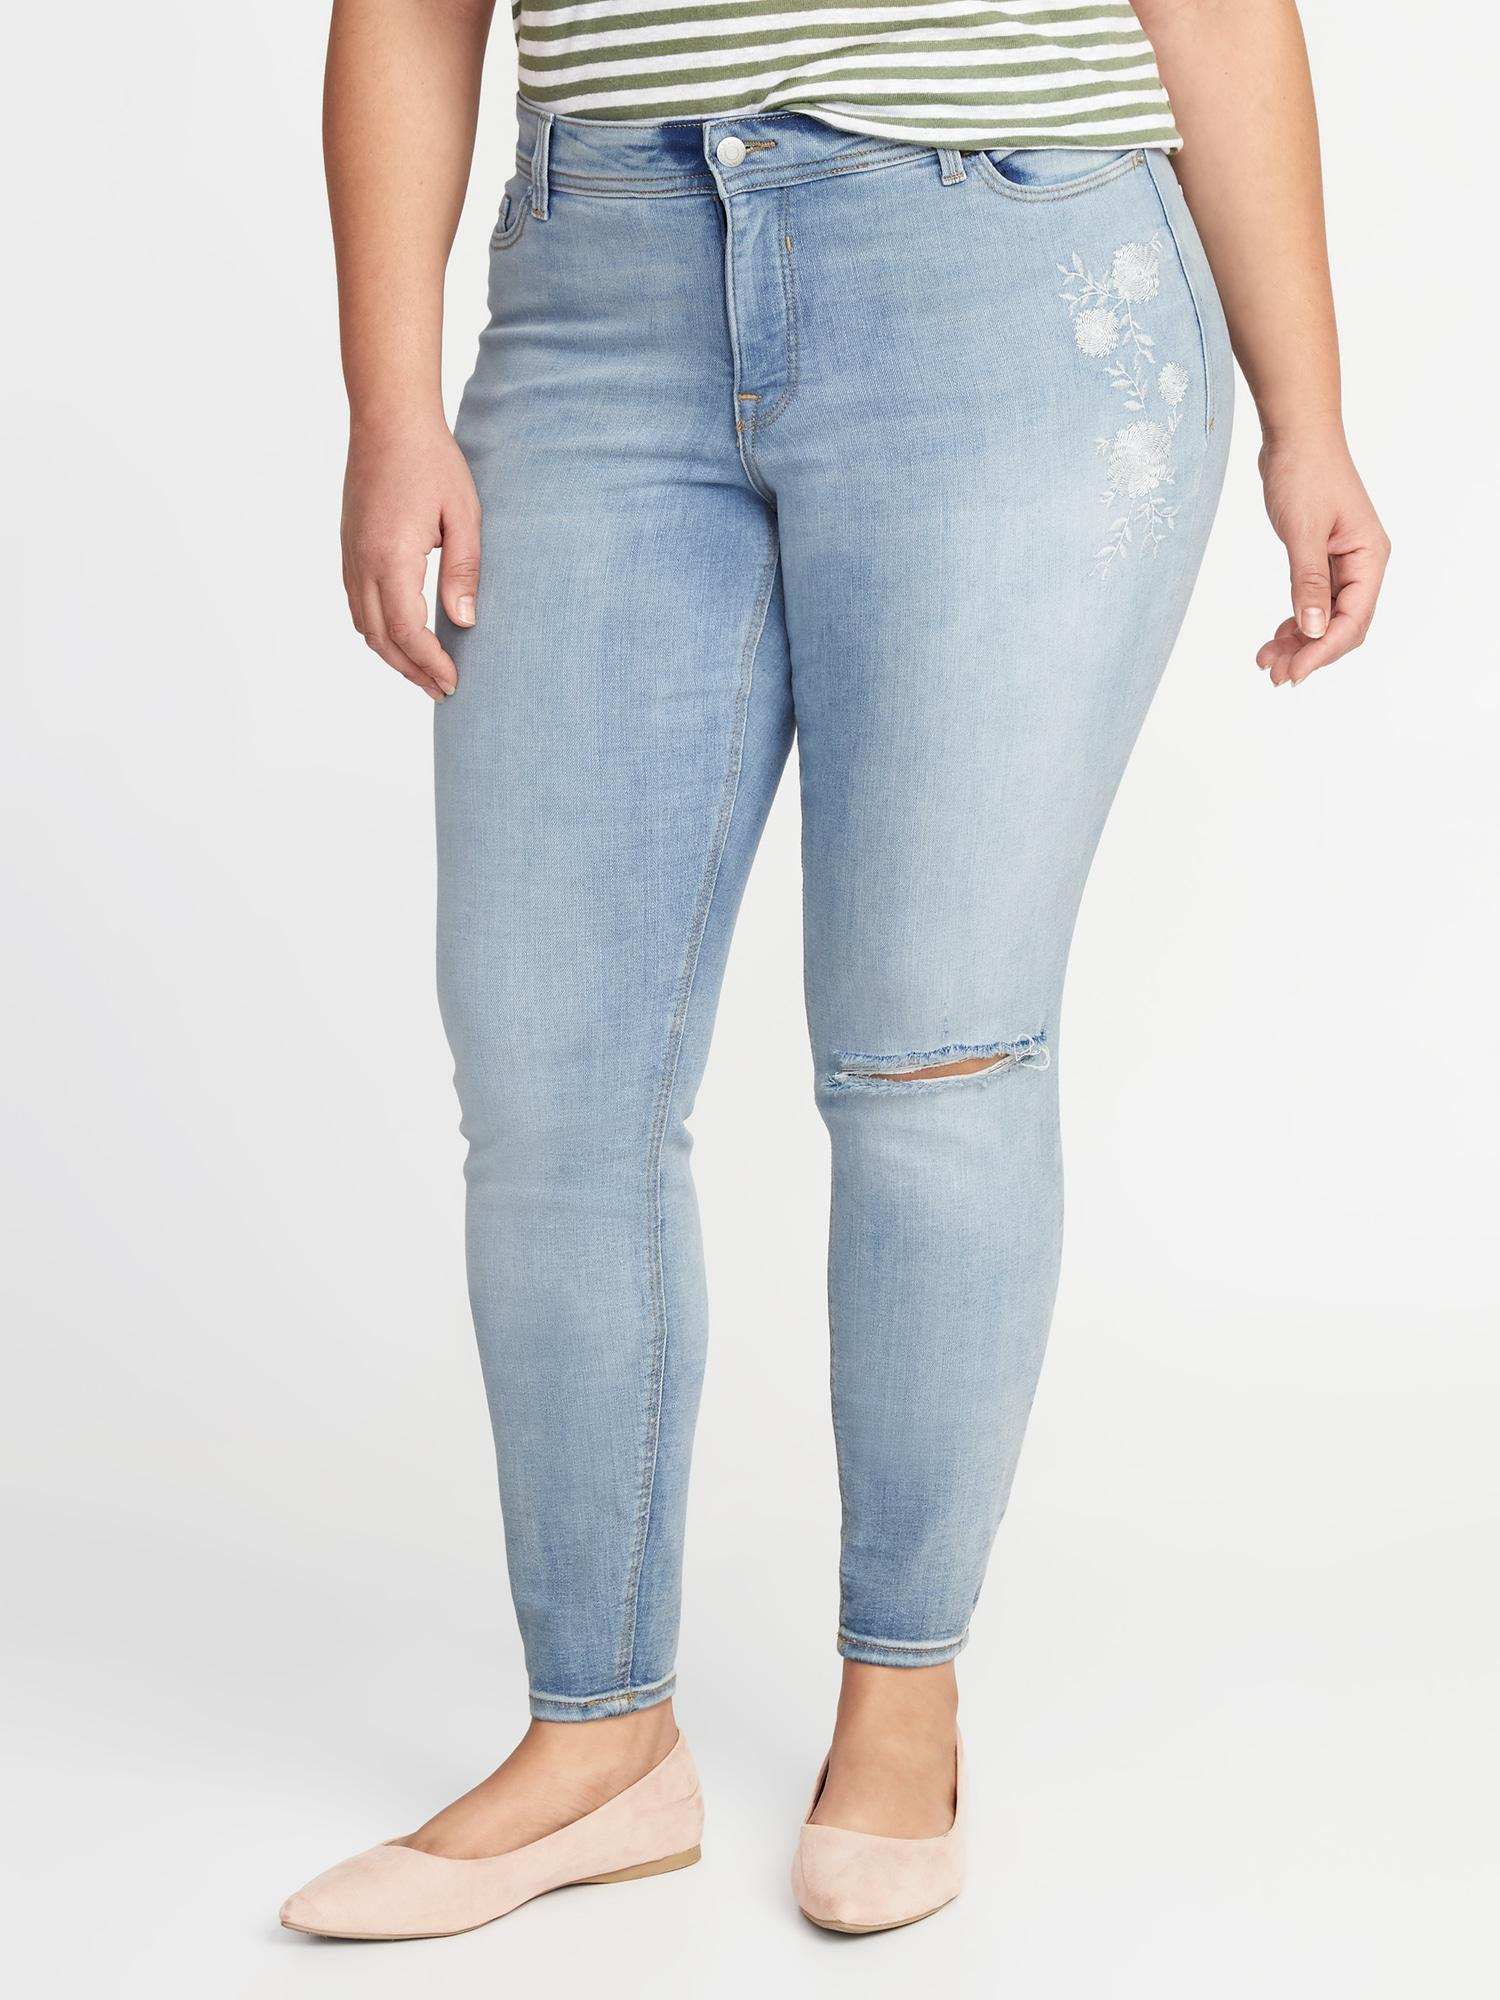 5b1b0300efea Lyst - Old Navy High-rise Secret-slim Pockets Plus-size Super Skinny ...